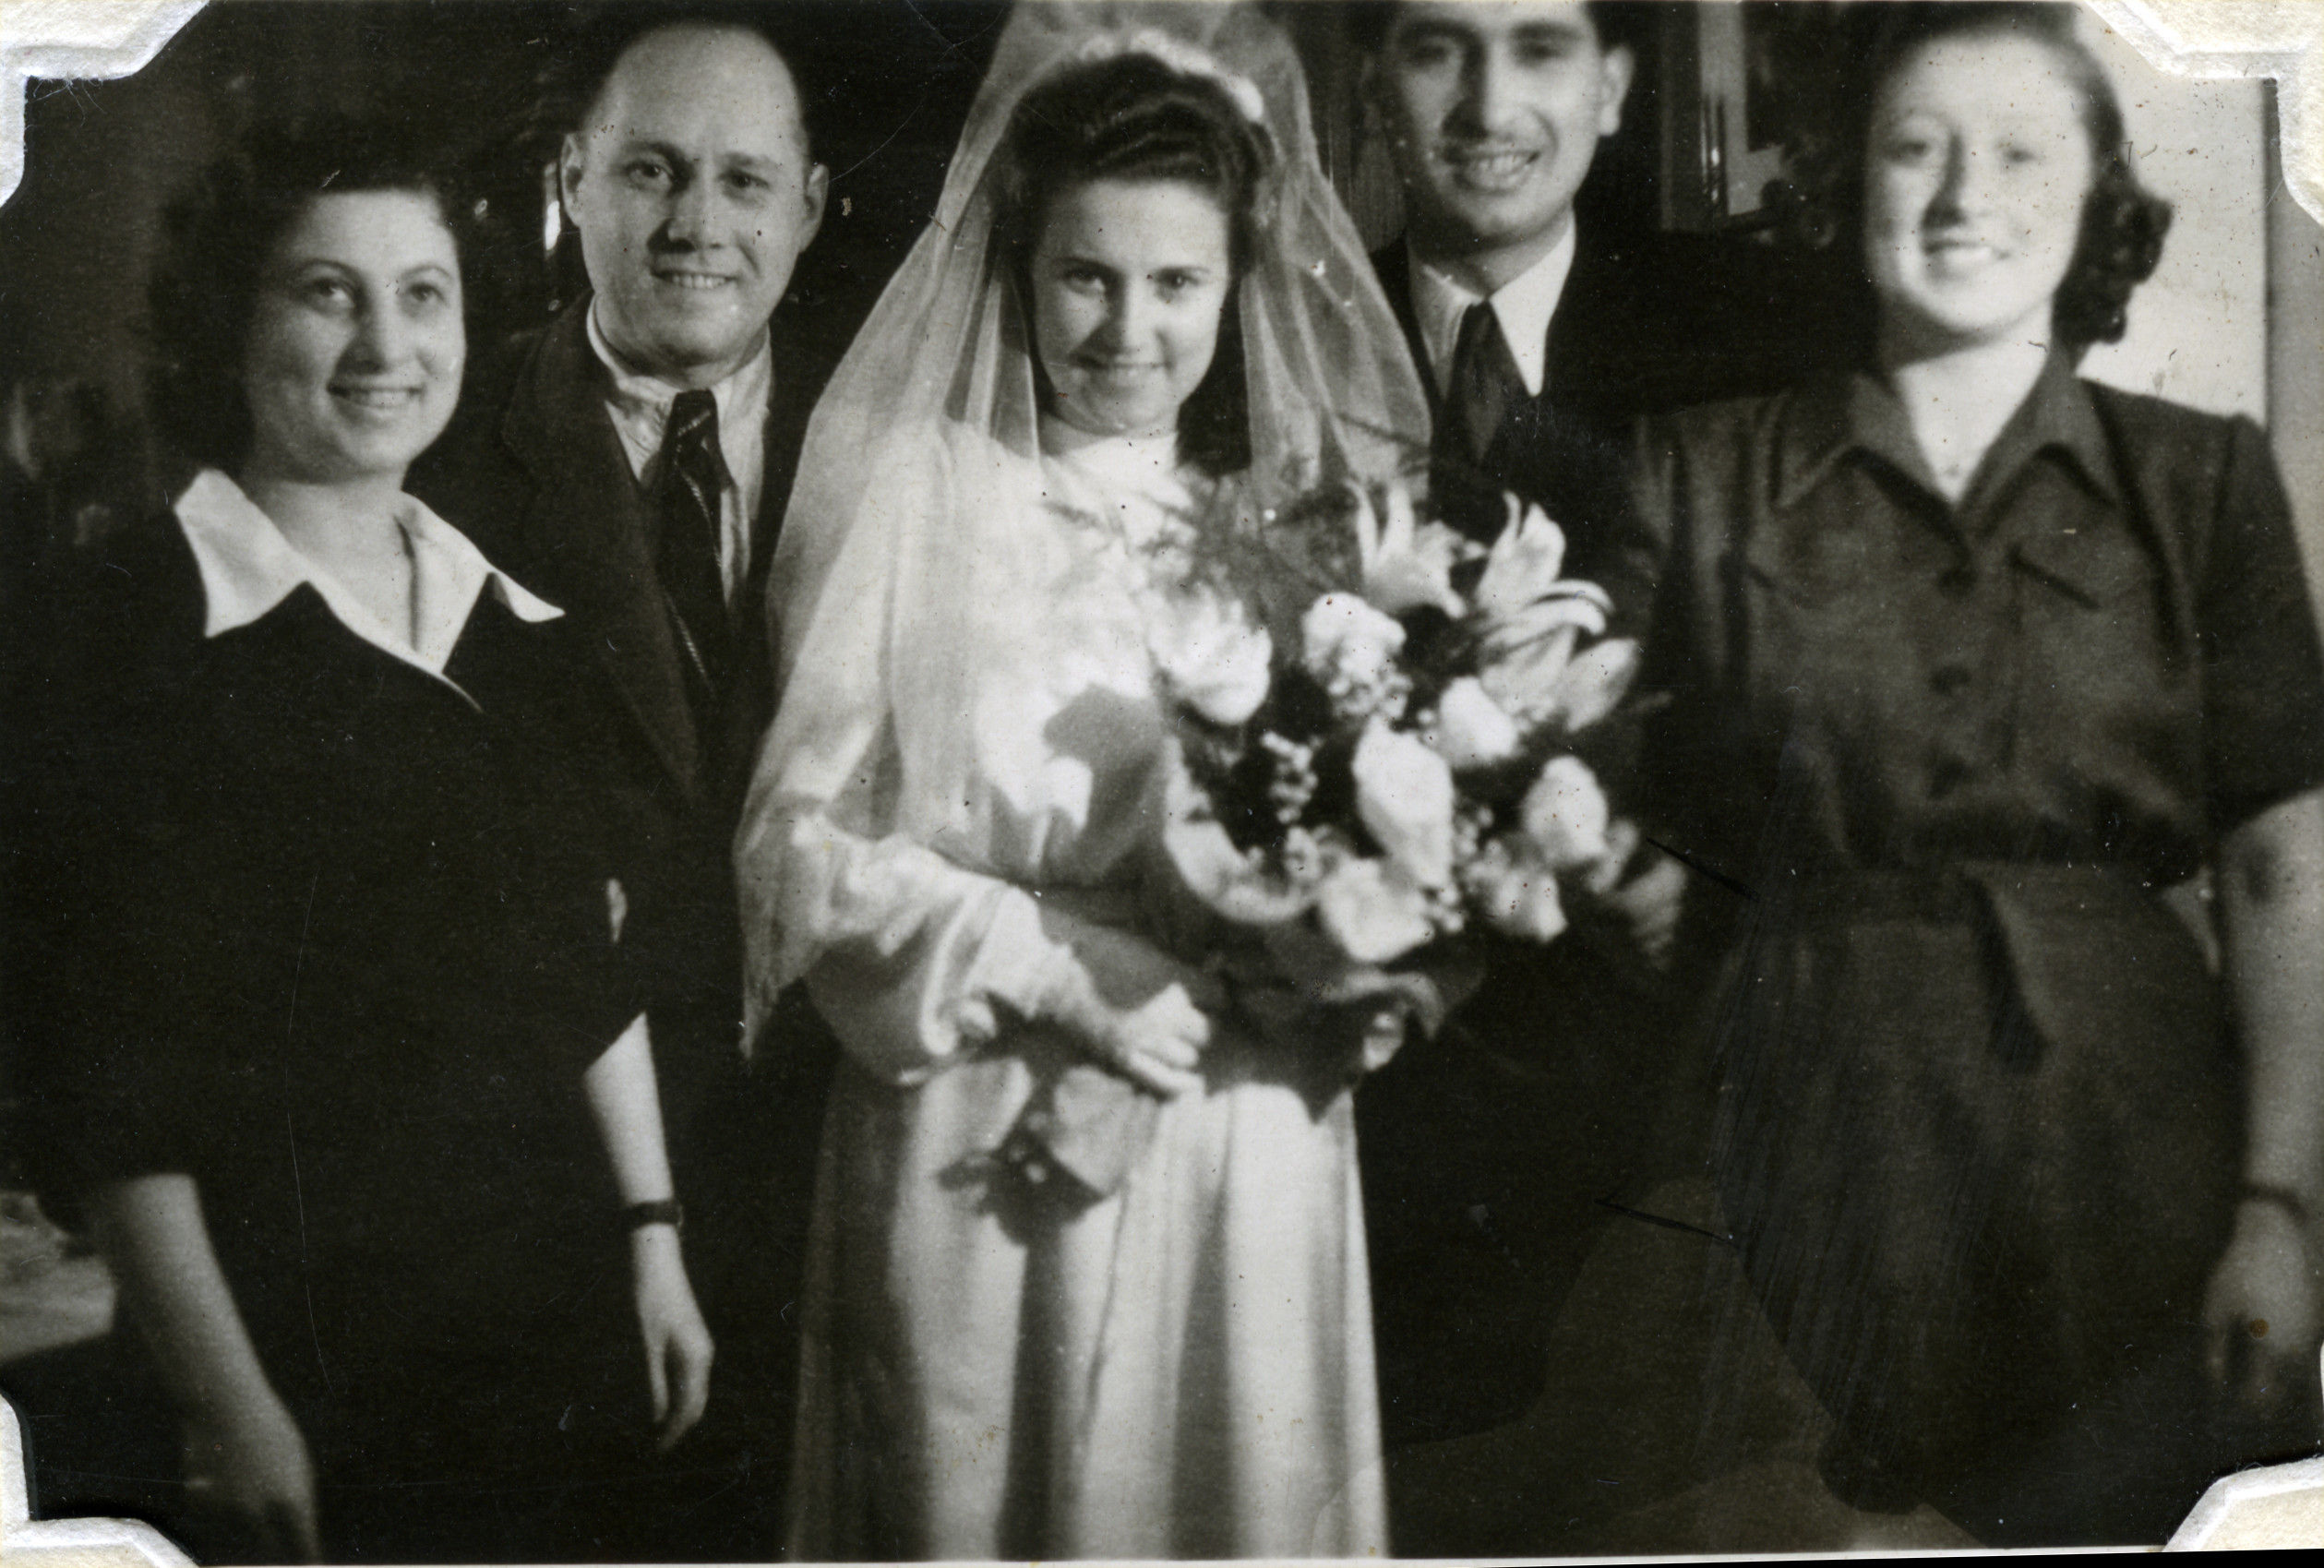 Wedding of Czech Jewish survivors in Podmokly, Czechoslovakia.  Pictured (left to right) are Matilda (nee Scheiner) and her husband Beila, Bella (nee Scheiner) and her husband David Perl, and Manci Scheiner.